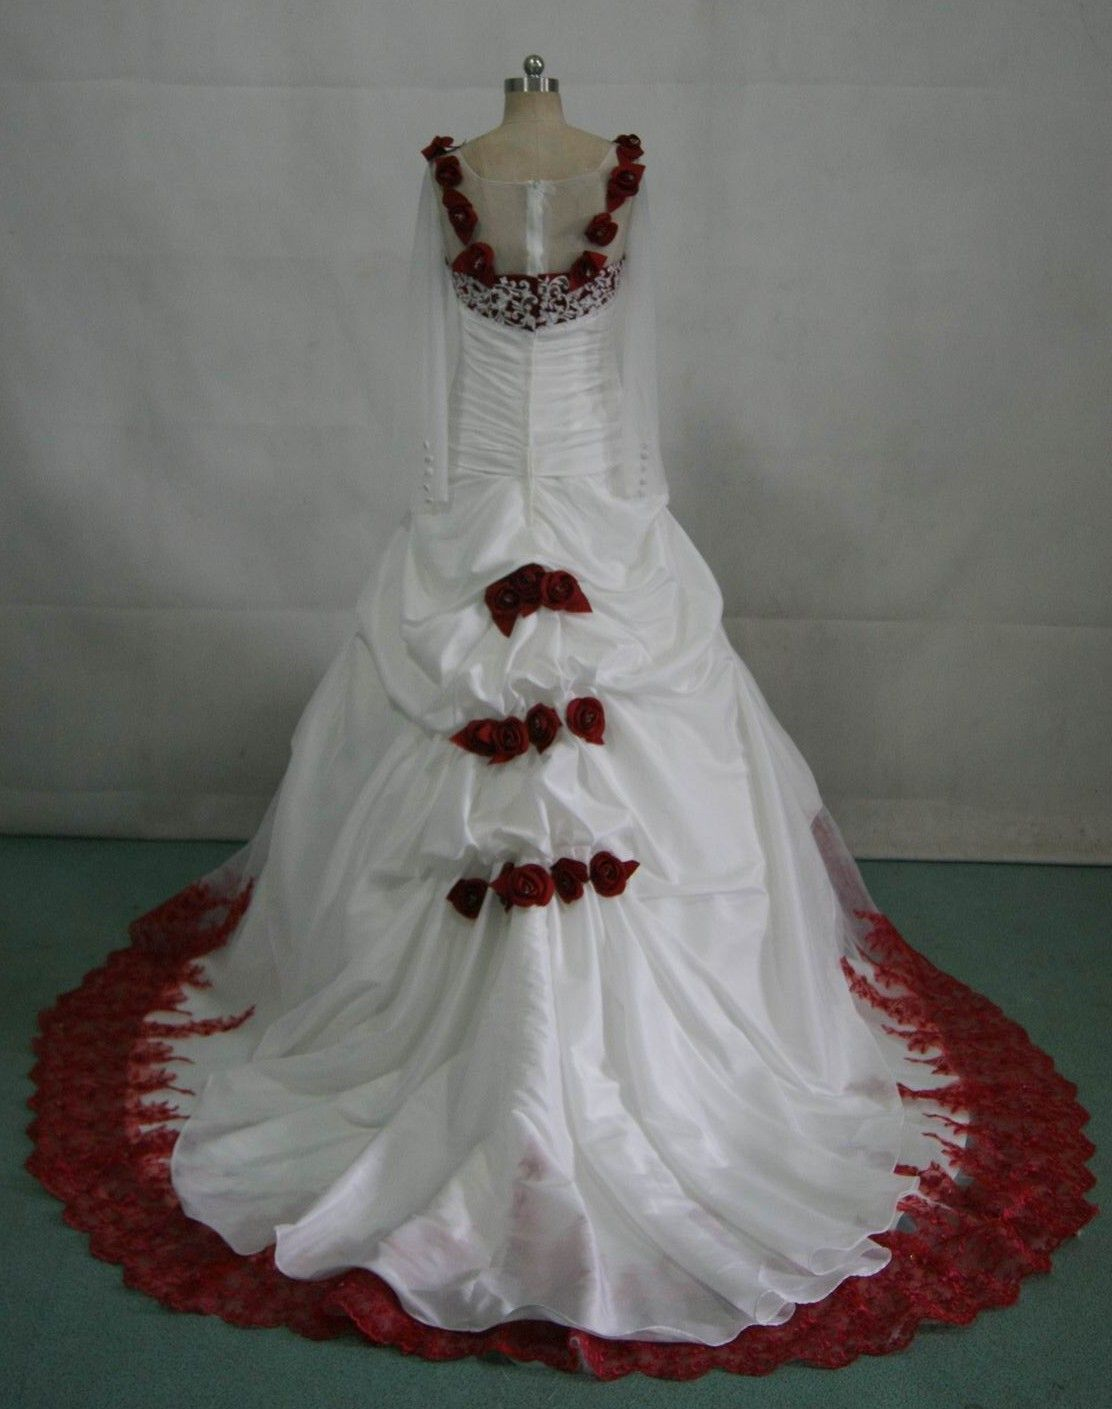 White Wedding Gown With Red Roses On The Dress Gothic Wedding